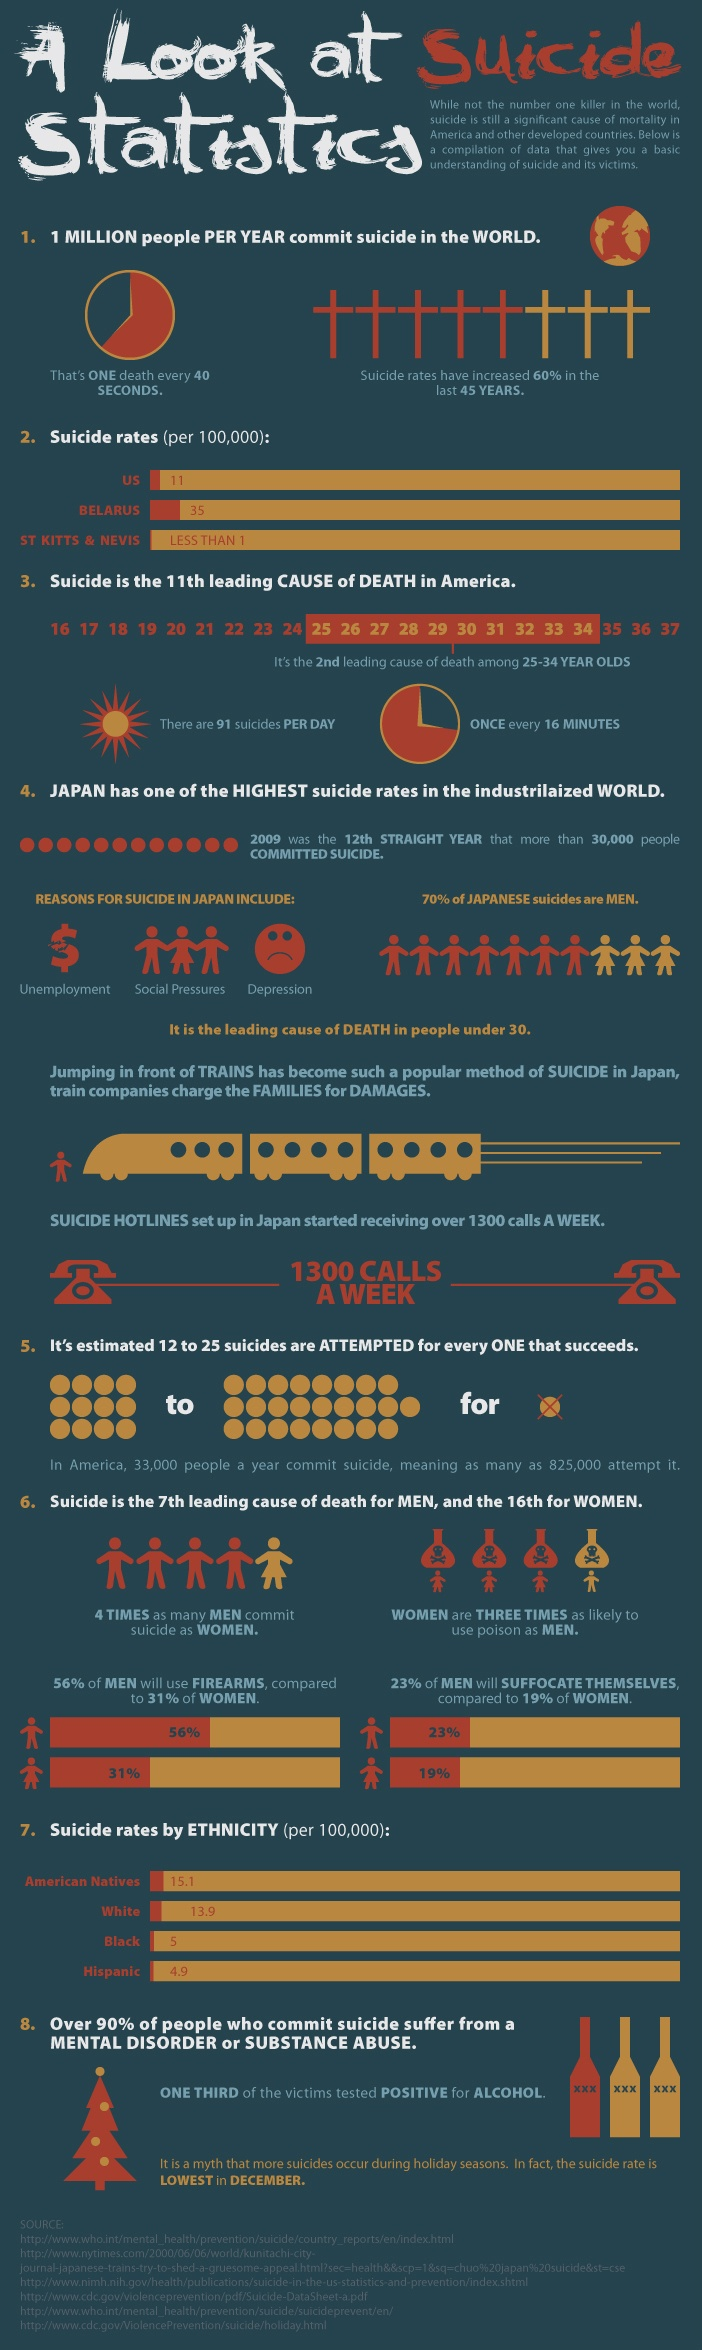 A Look at Suicide Statistics.  Over 90% of people who commit suicide suffer from a mental disorder or substance abuse.